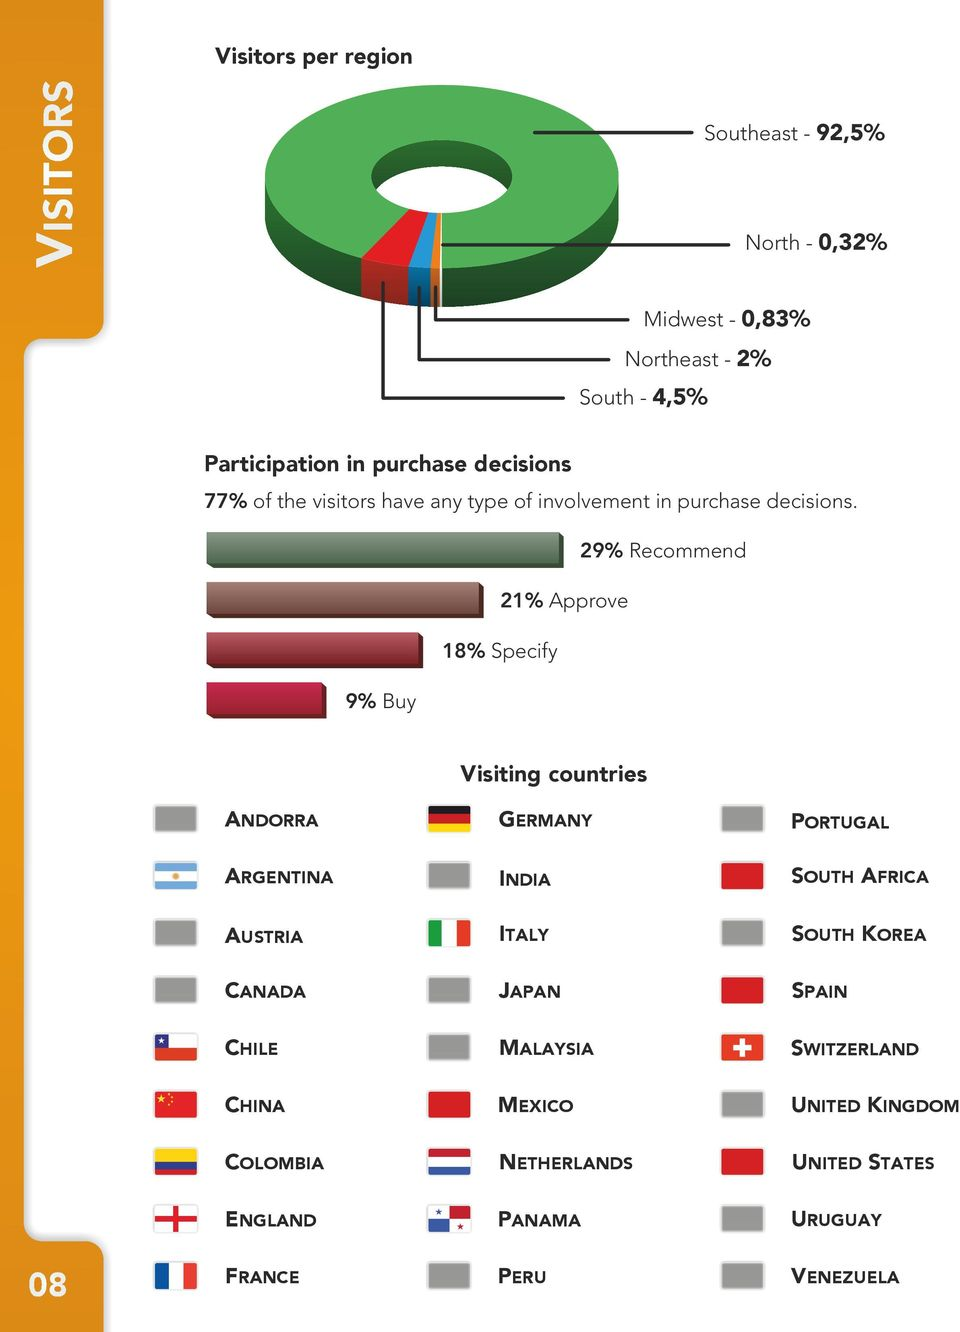 29% Recommend 21% Approve 18% Specify 9% Buy Visiting countries ANDORRA GERMANY PORTUGAL ARGENTINA INDIA SOUTH AFRICA AUSTRIA